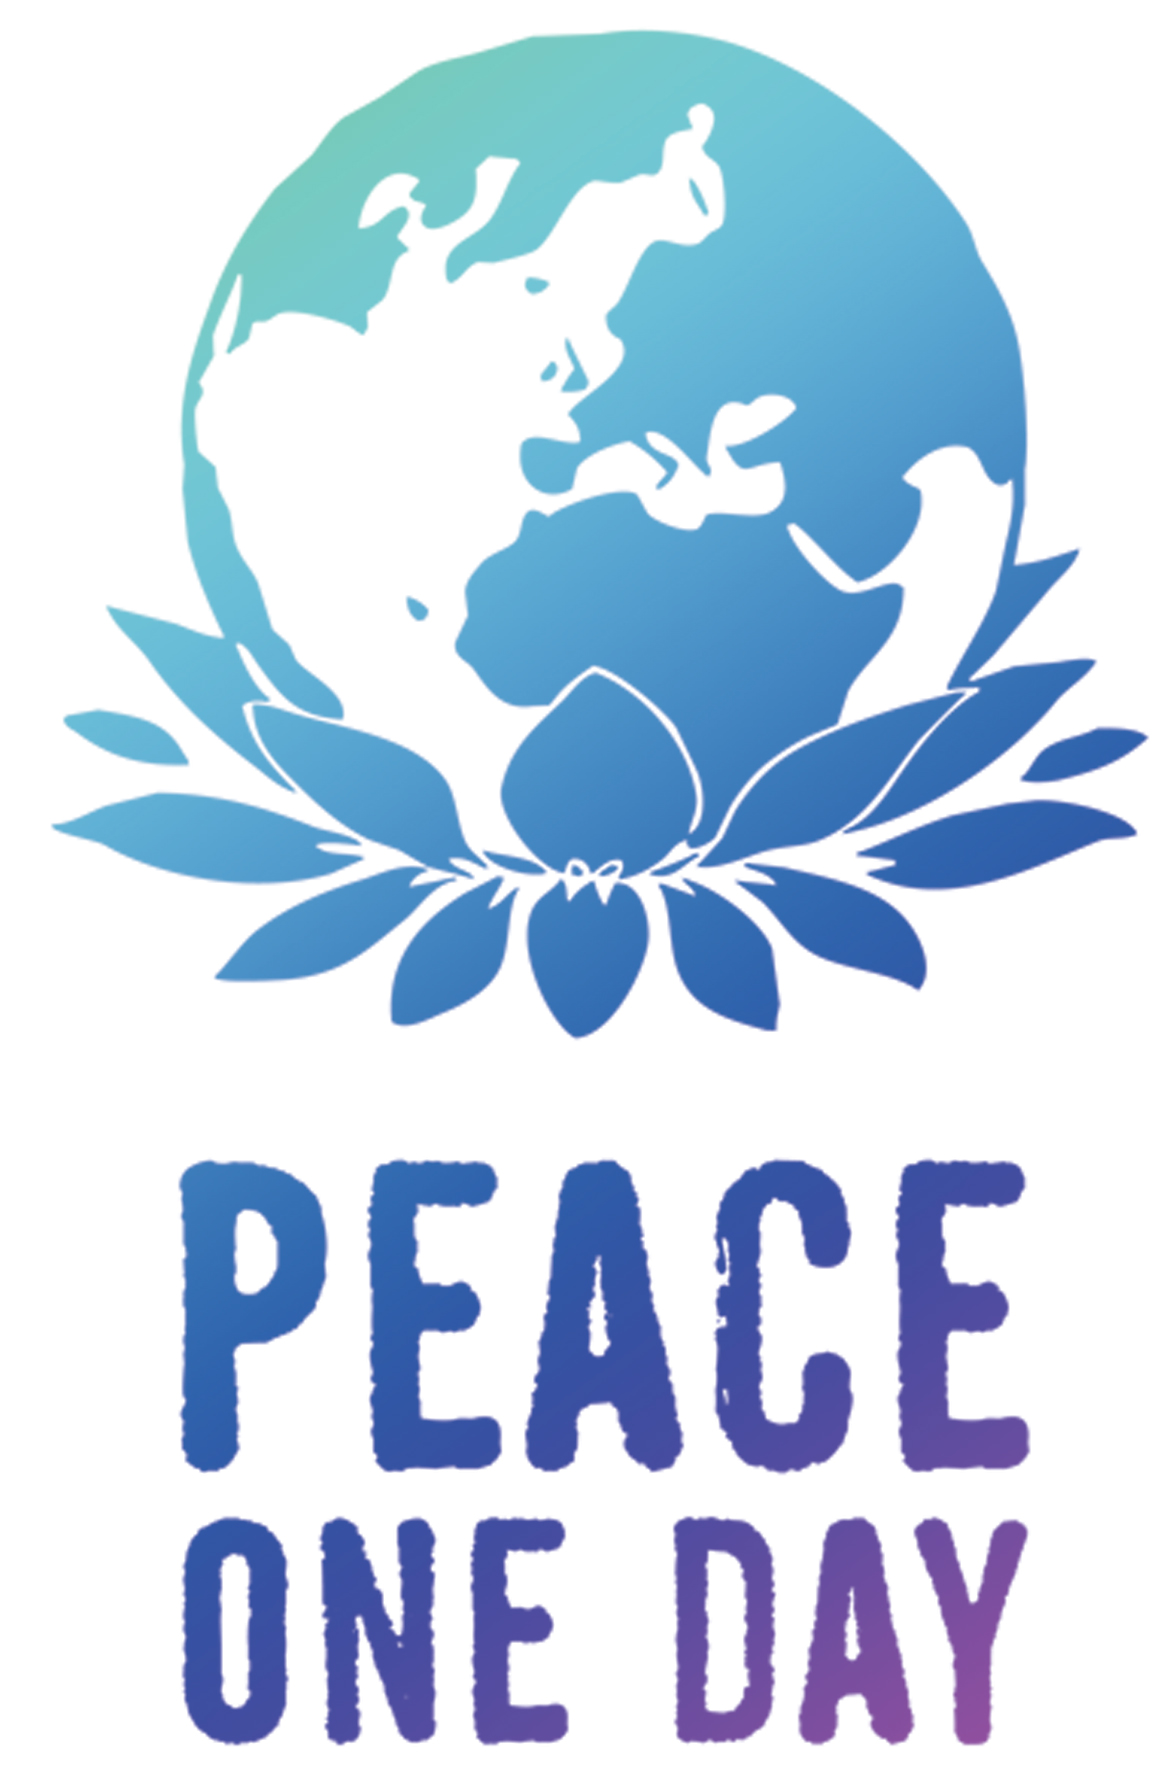 International Day of Peace Wallpapers HD Download 1176x1784